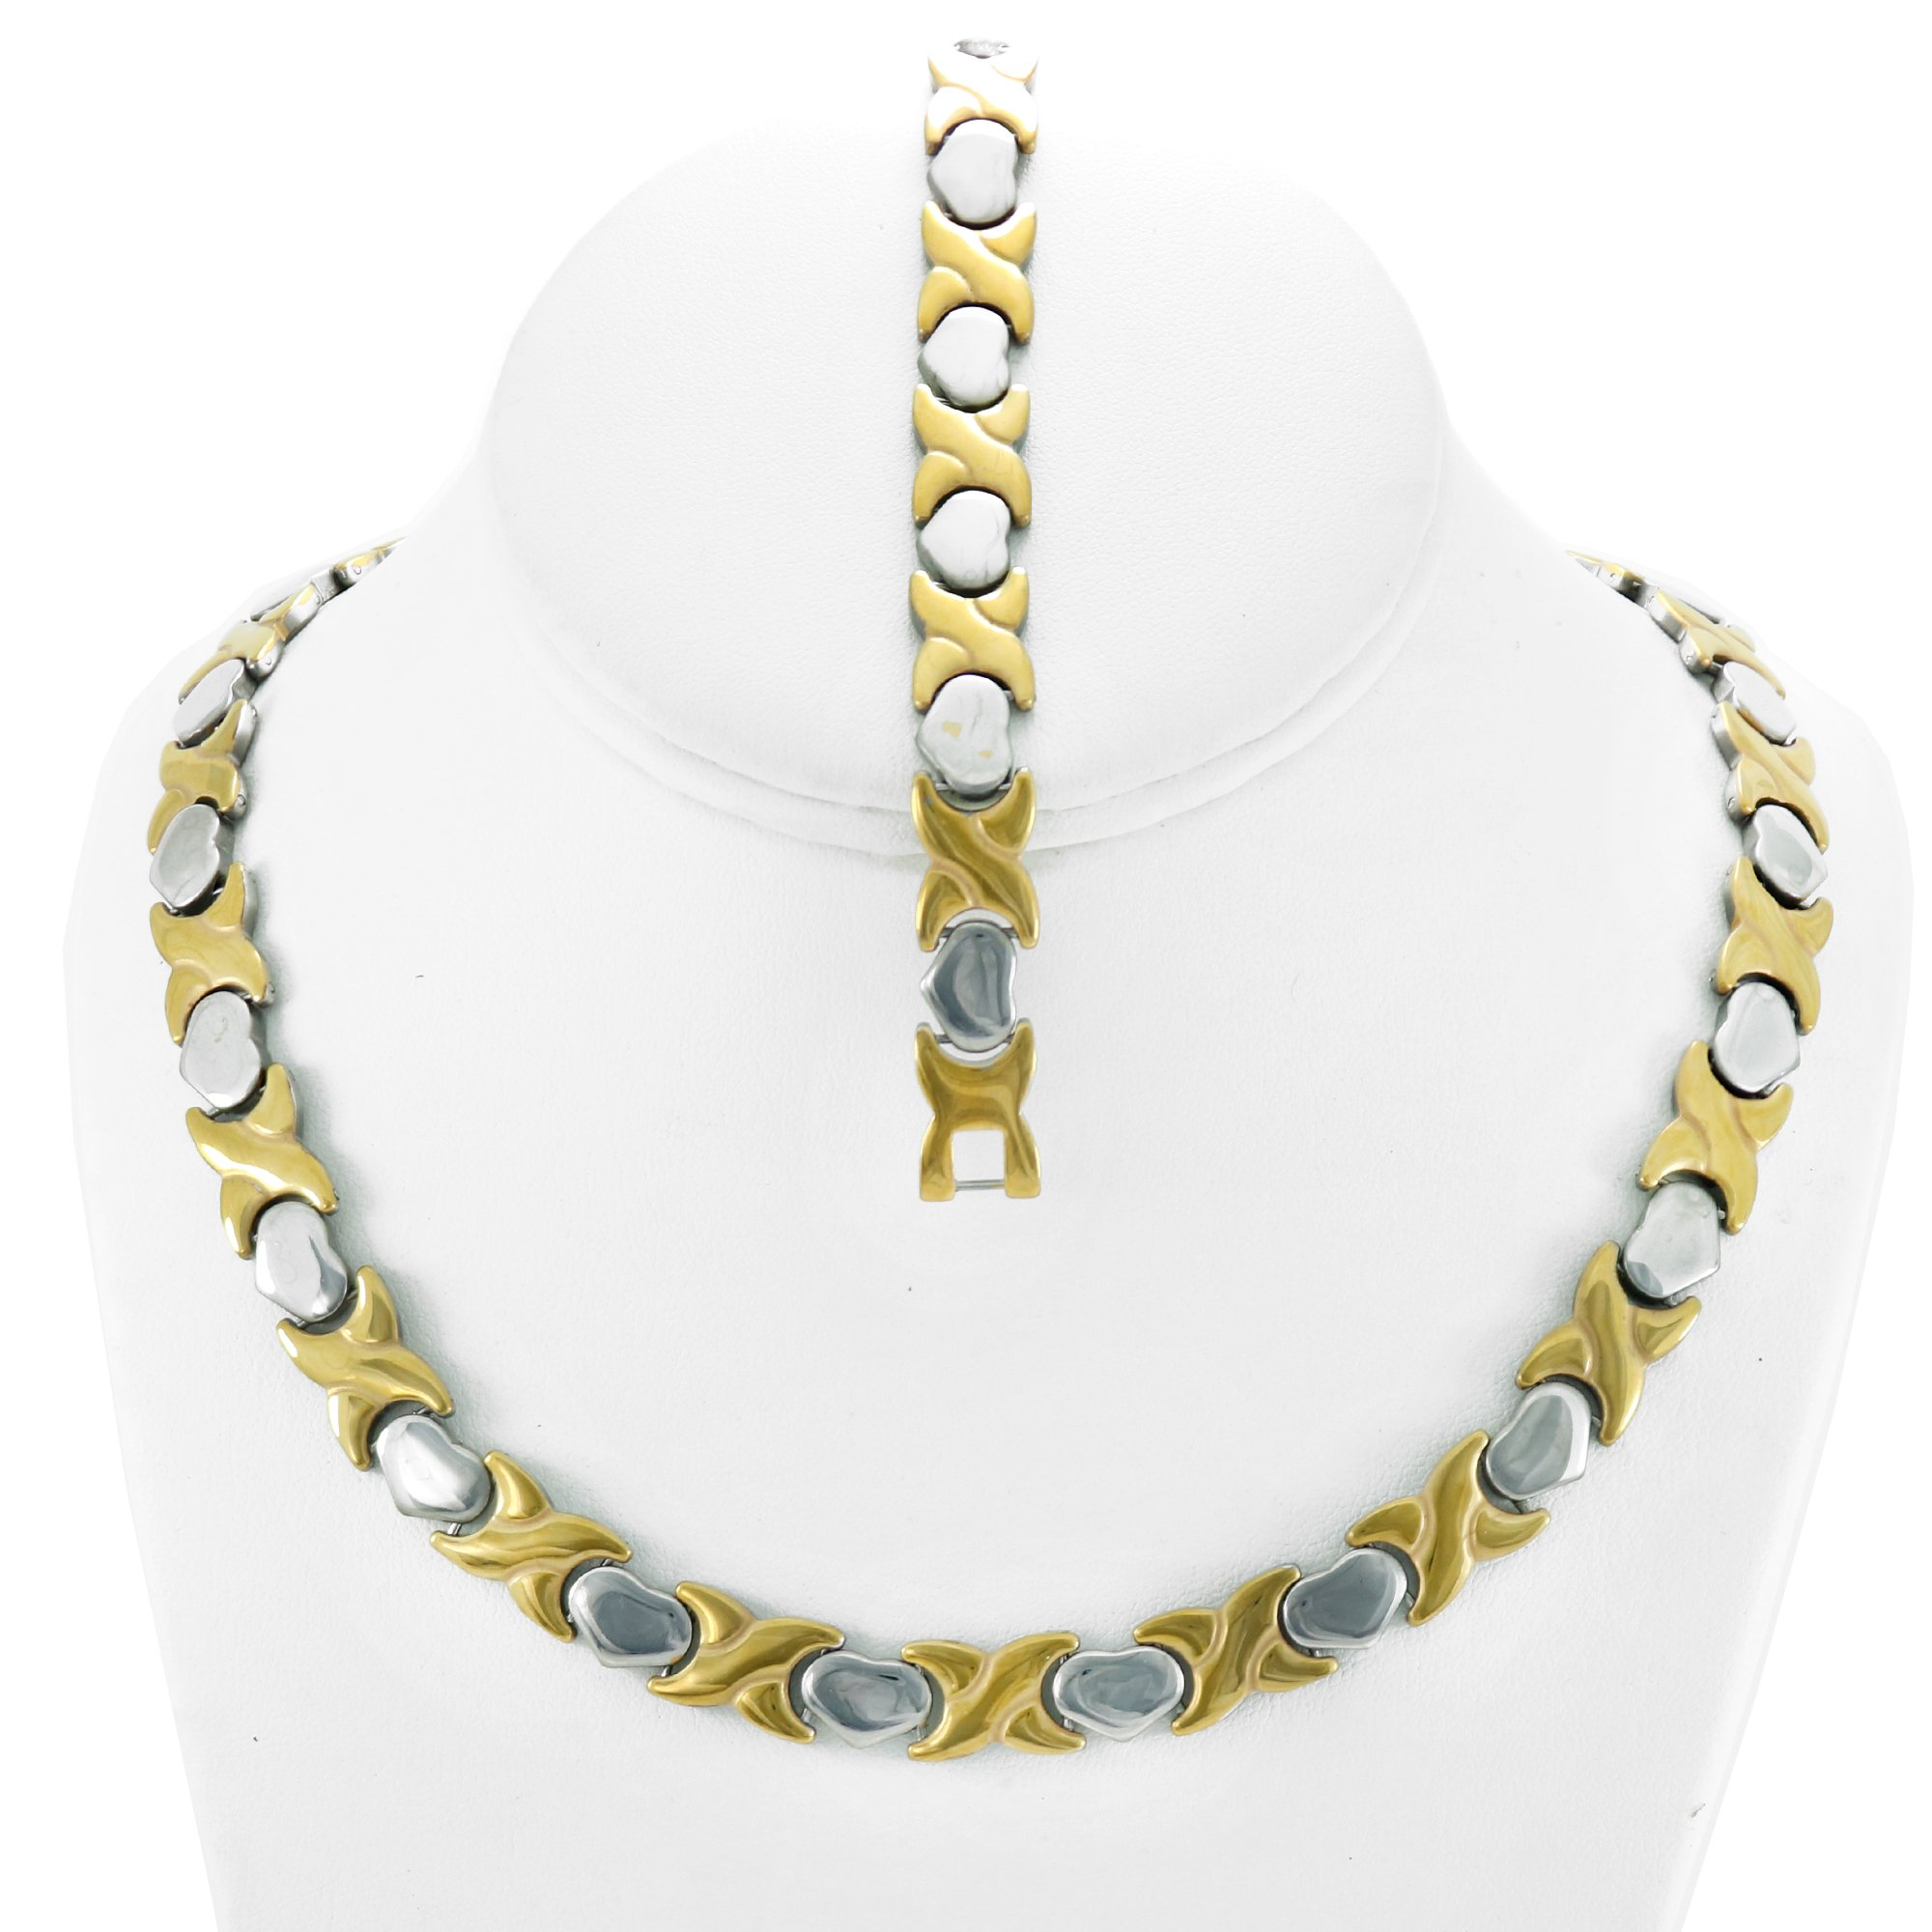 NEW 11mm Width Womens Two Tone (Gold & Silver) XOXO Stampato Necklace and Bracelet Set 18/20'' LENGTH (Necklace Length 20'')